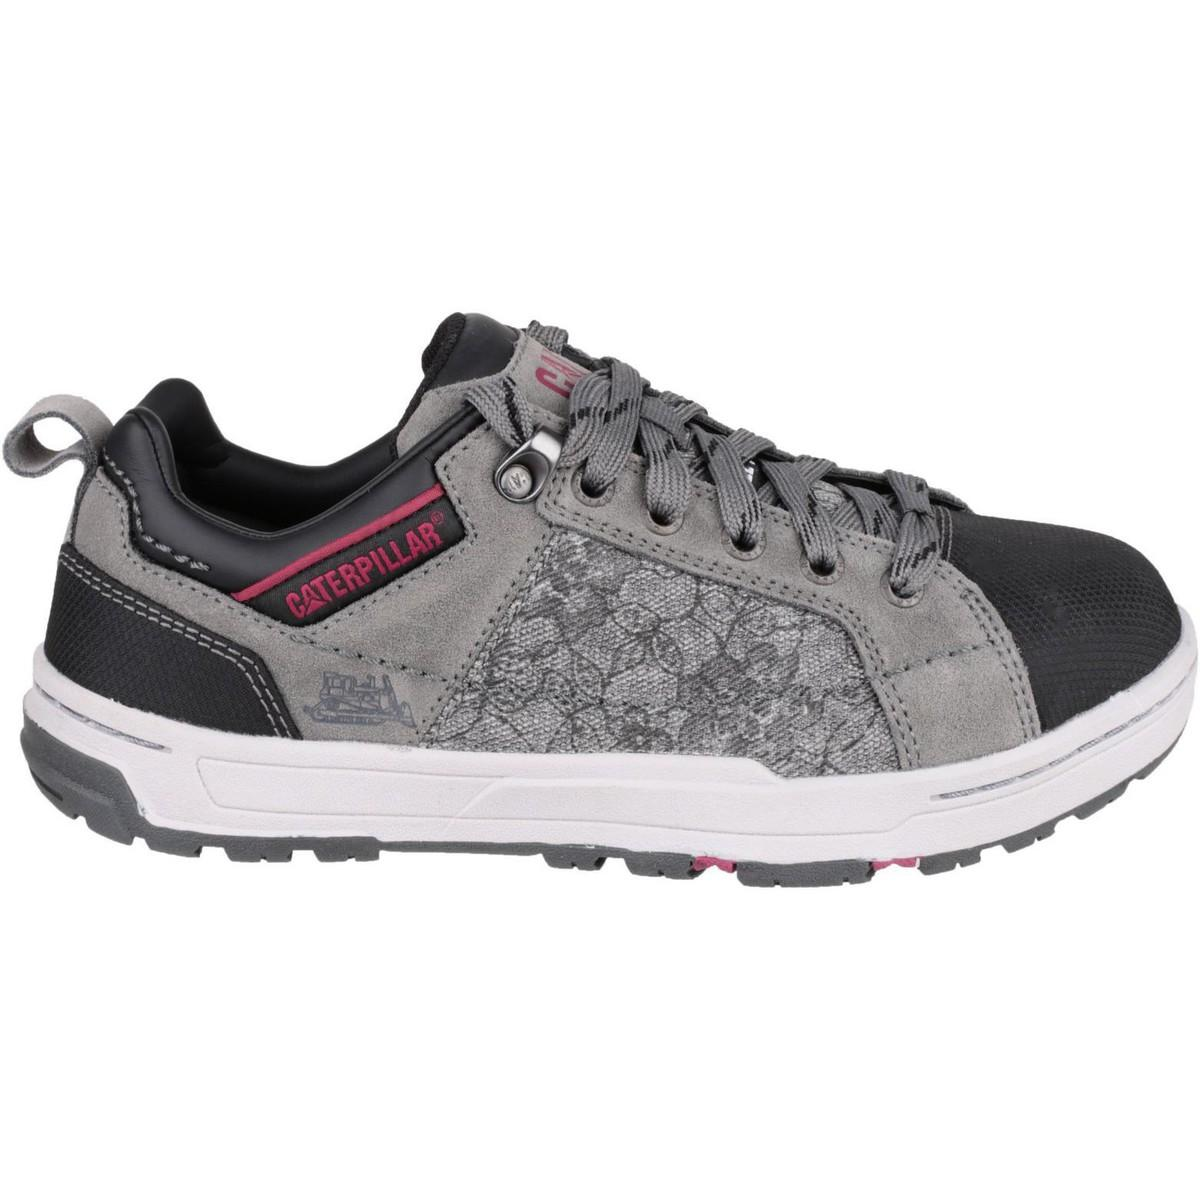 Caterpillar Leather Cat Brode Trainer Men's Shoes (trainers) In Grey in Grey for Men